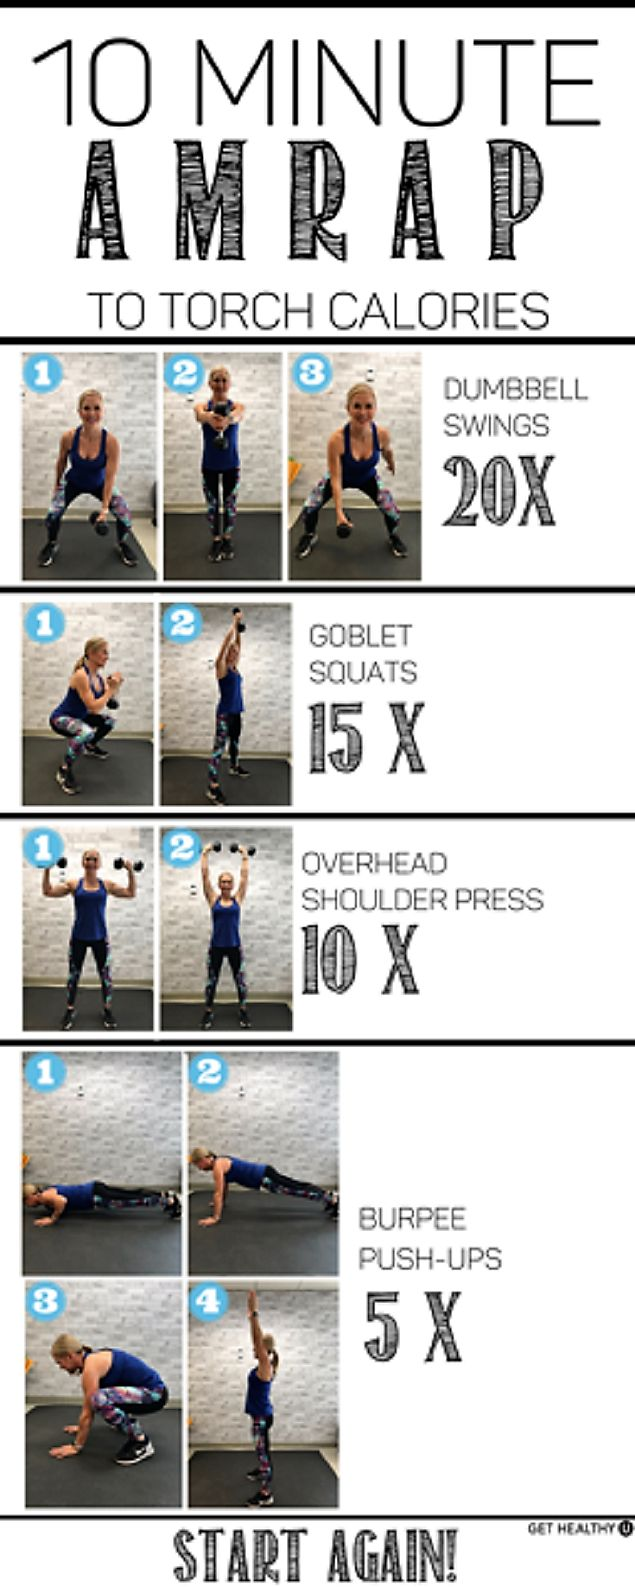 10-Minute AMRAP Workout To Torch Calories [exercise-by-exercise photo guide]